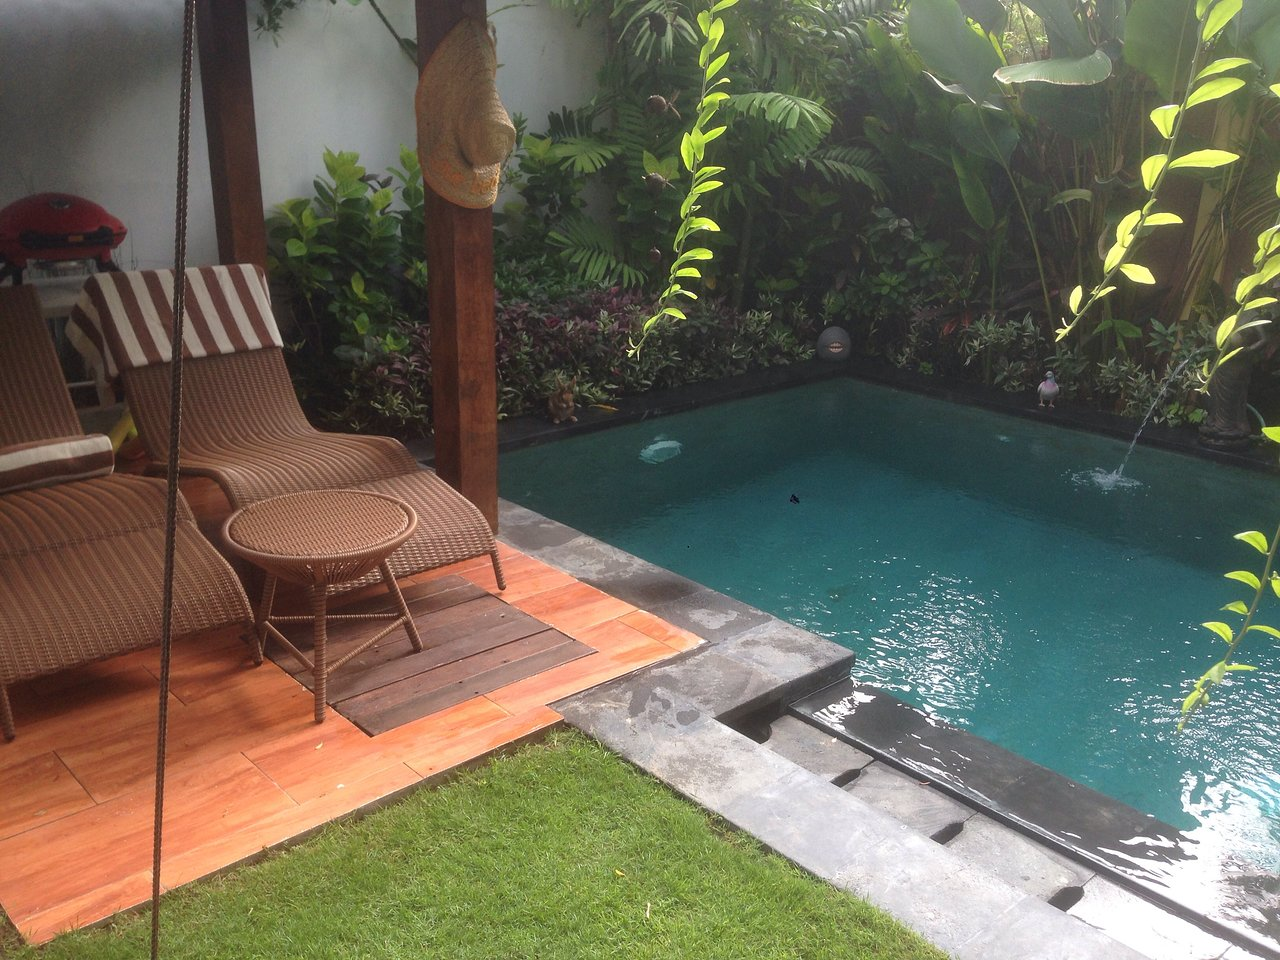 Villa Esperanza Villa Esperanza Prices Reviews Tibubeneng Indonesia